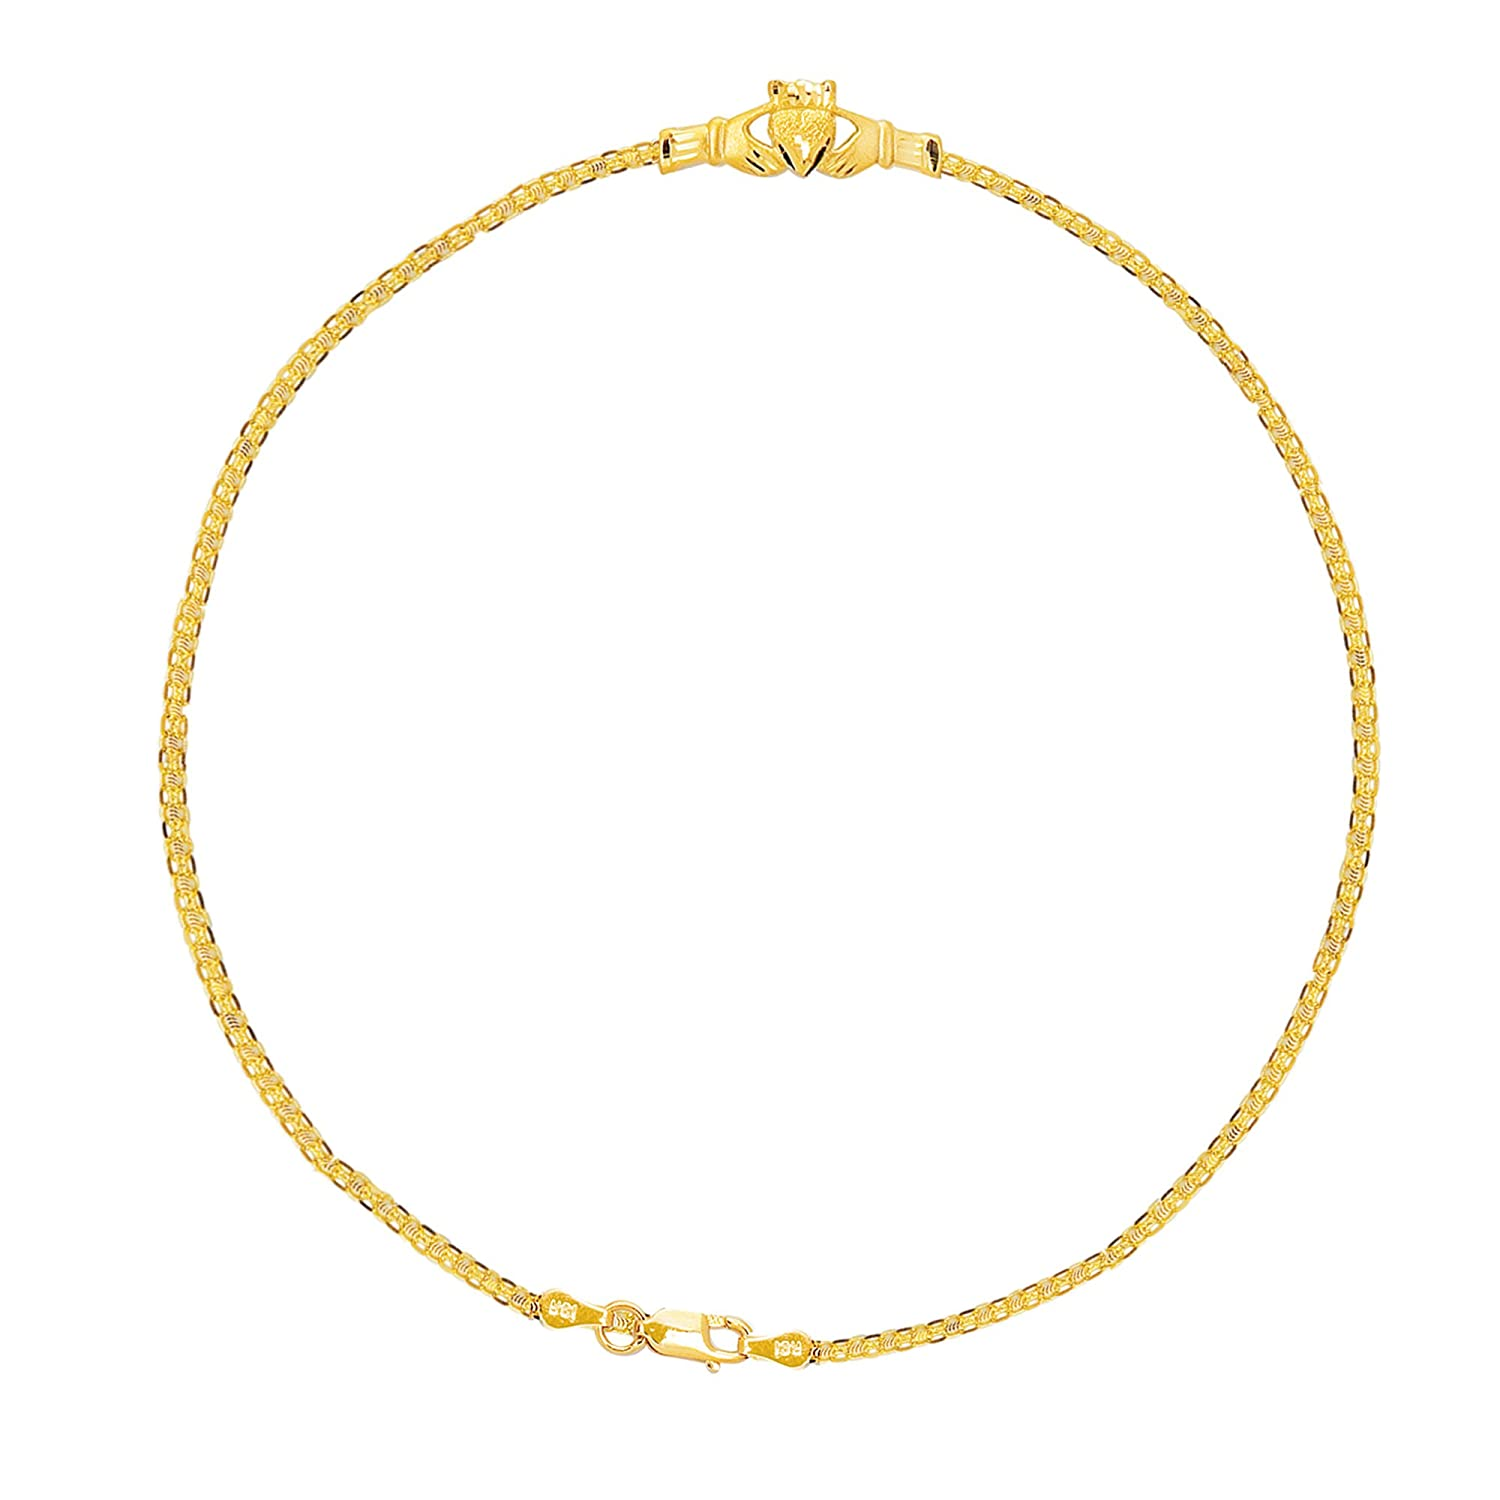 chain bracelet design round yellow property room anklet solid gold long figarucci l